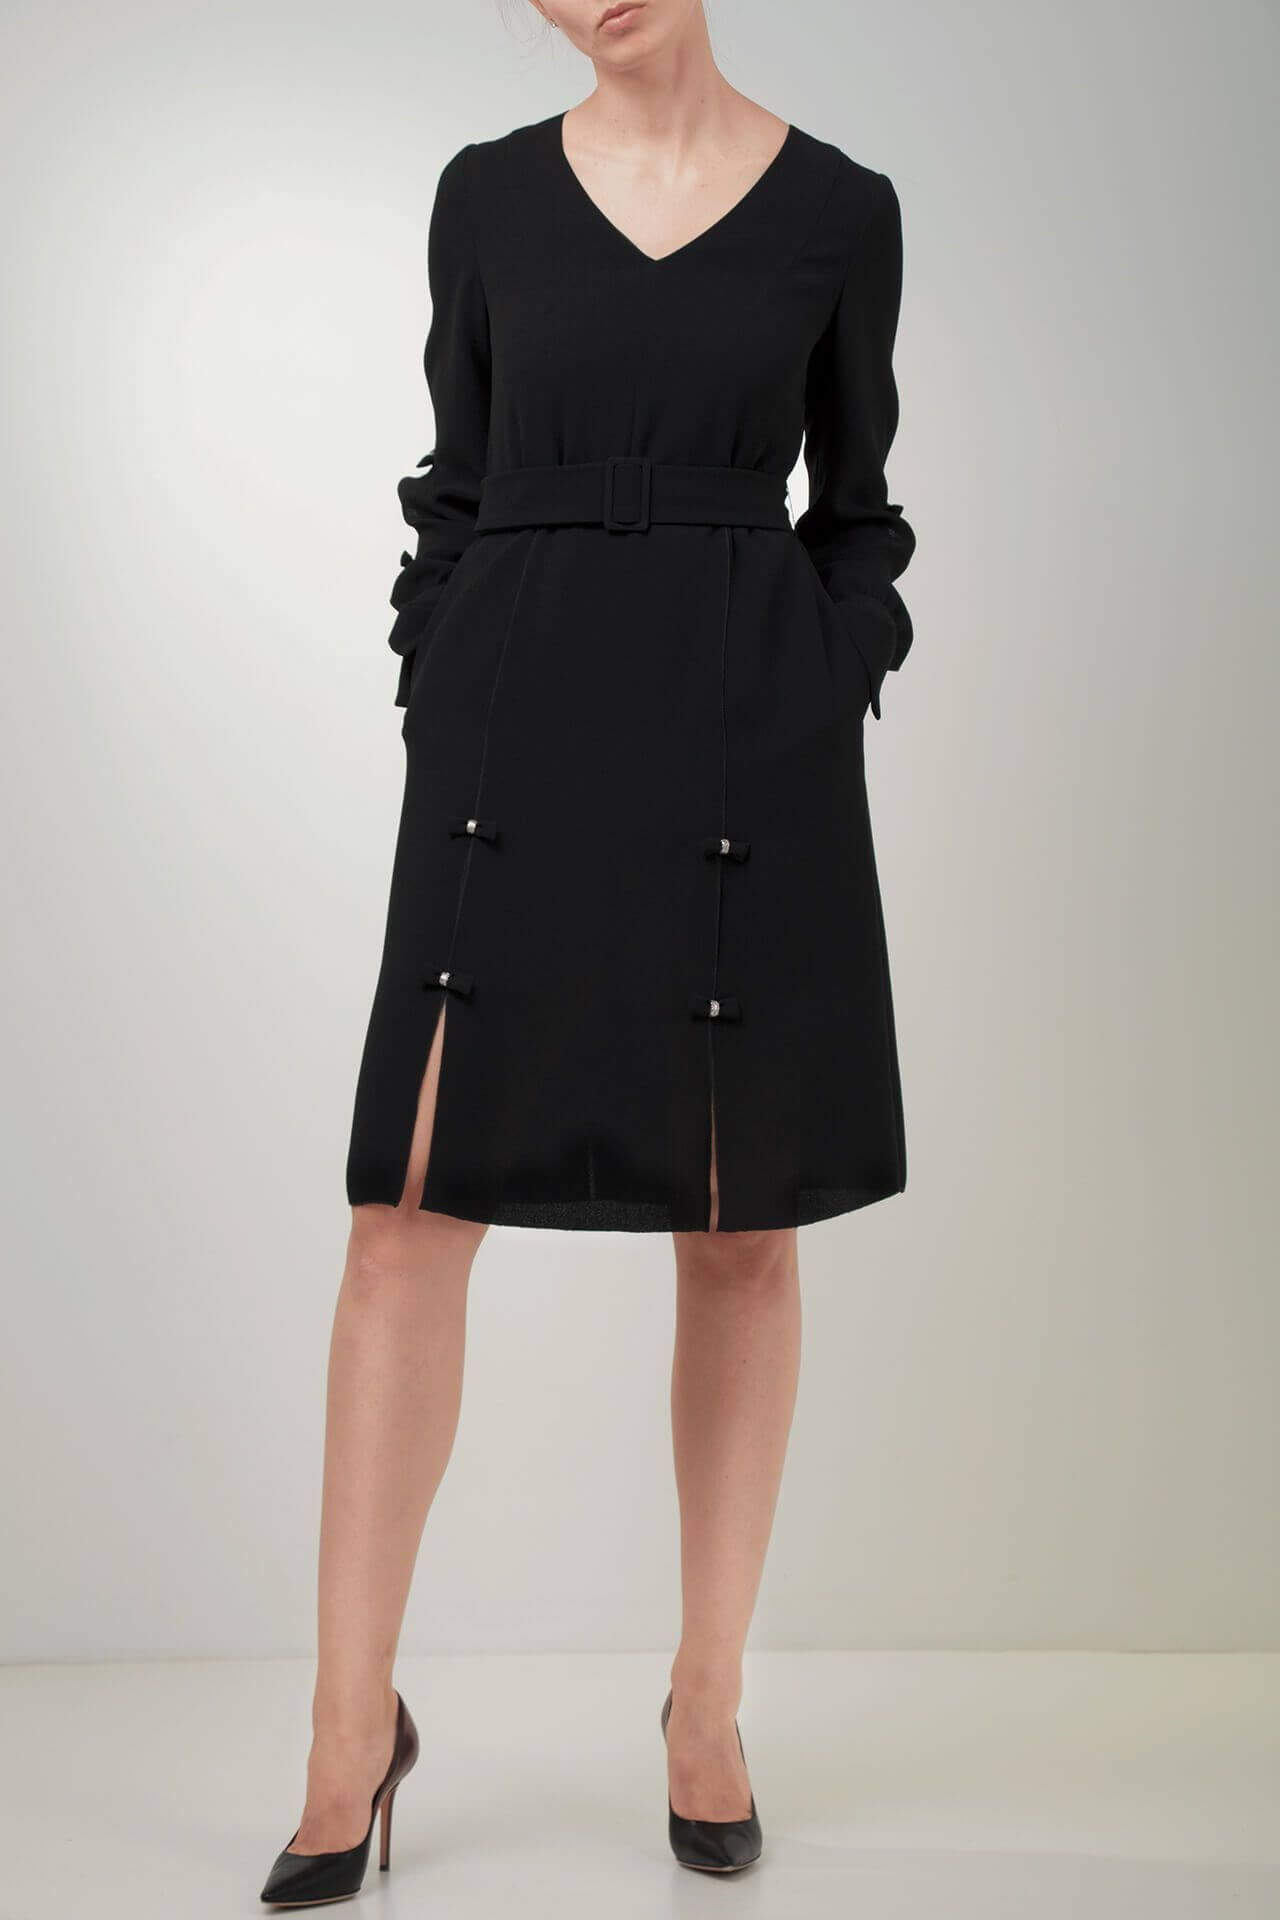 Outfit ideas for lawyers_black bow dress